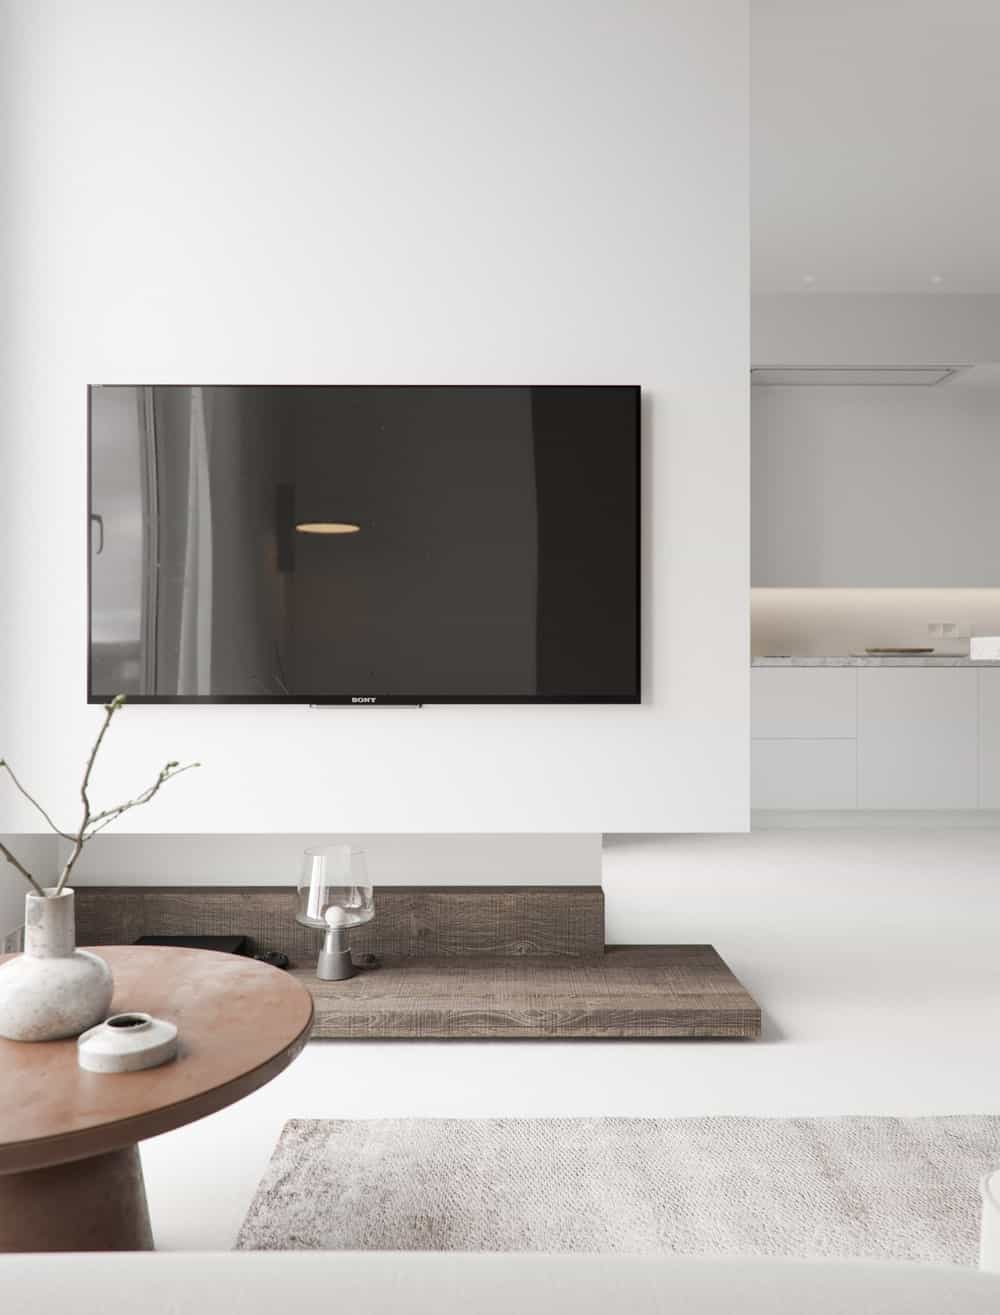 This is the opposite wall of the sectional sofa with a wall-mounted TV and has a view of the kitchen.